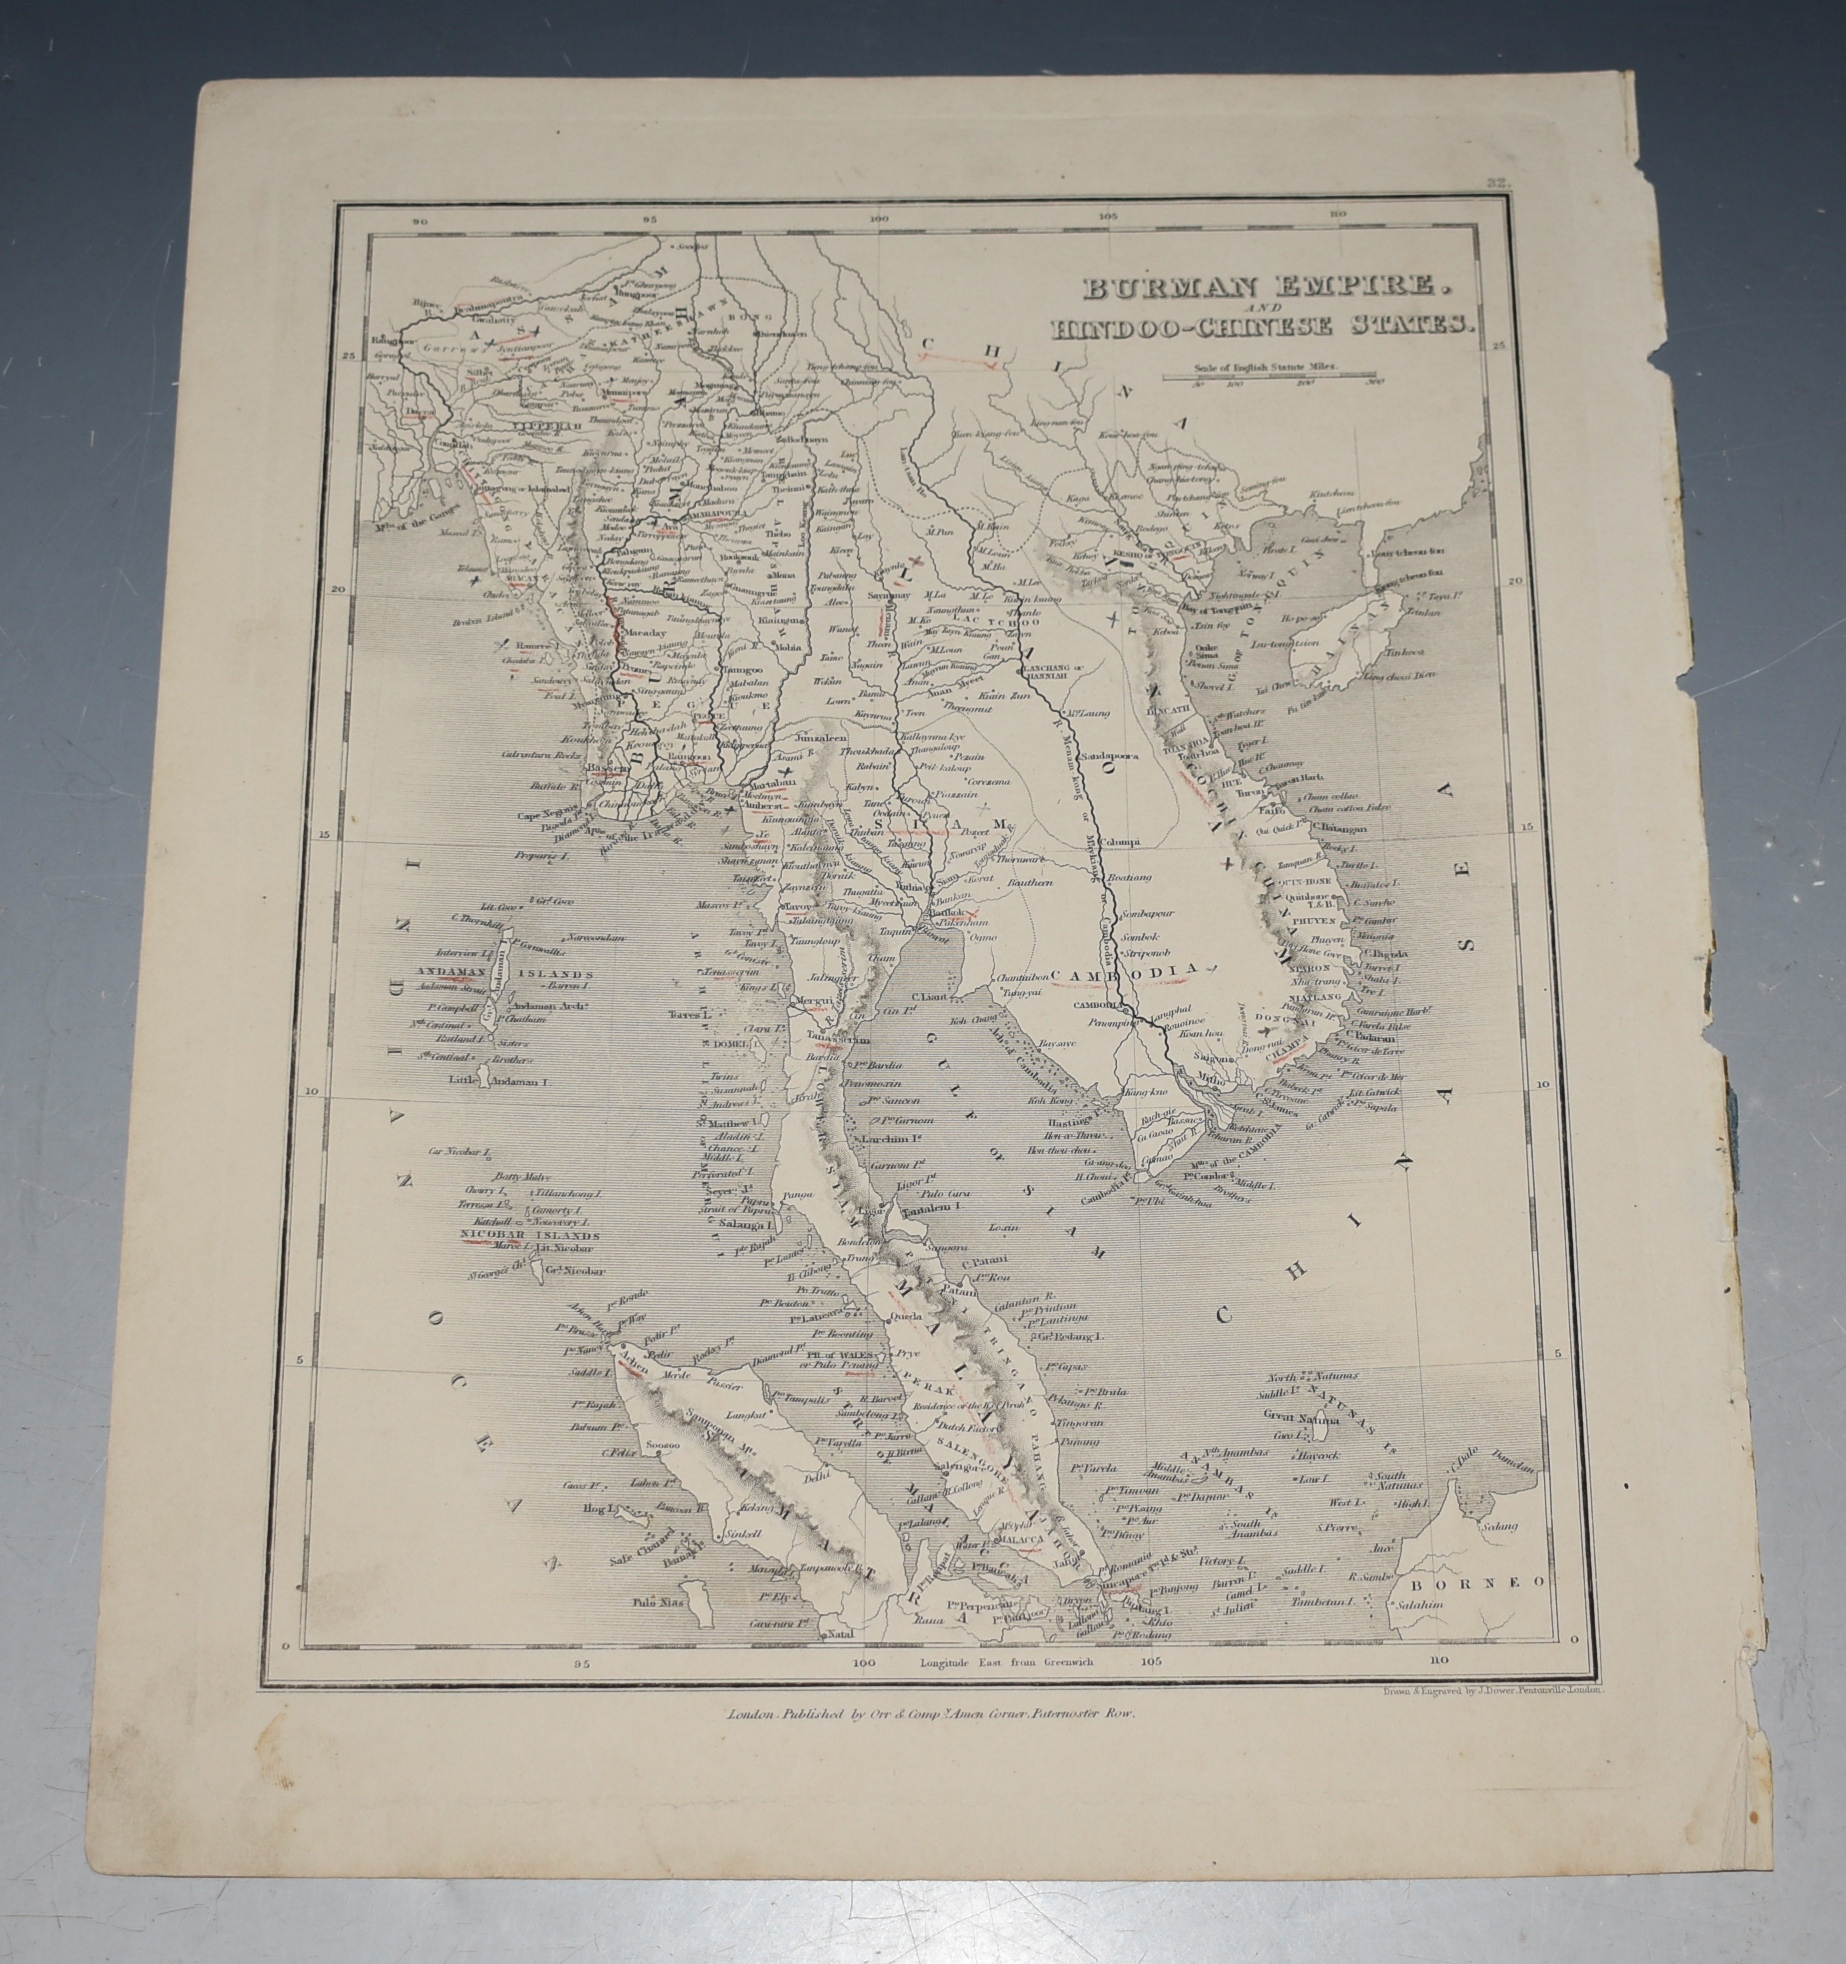 Image for BURMAN EMPIRE and HINDOO-CHINESE STATES.